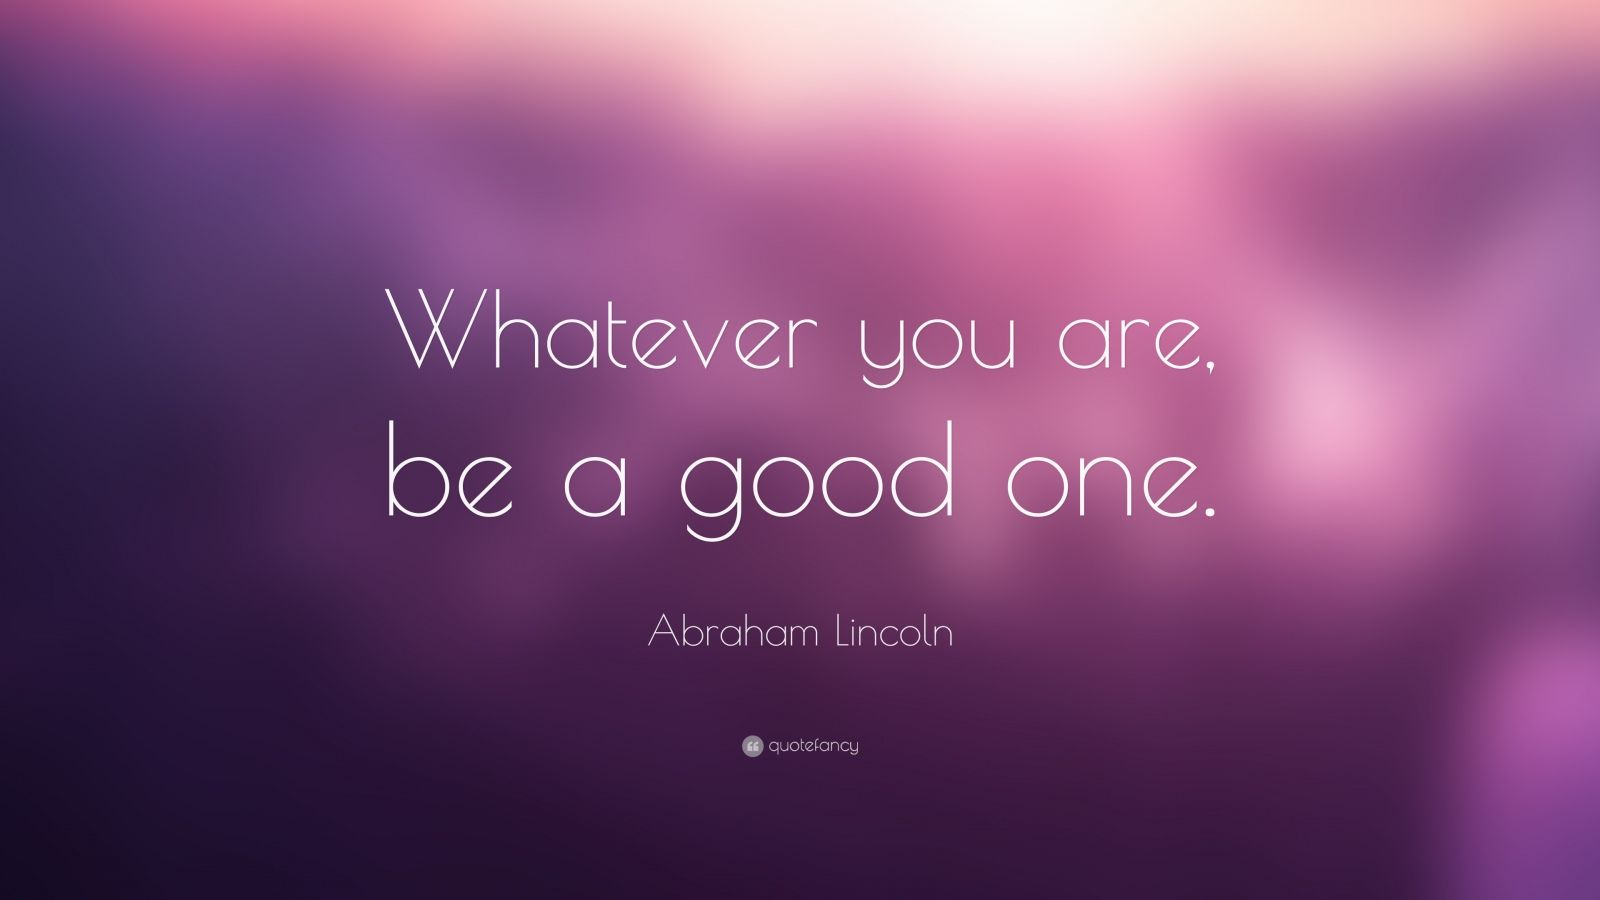 """Abraham Lincoln Quote """"Whatever you are, be a good one"""